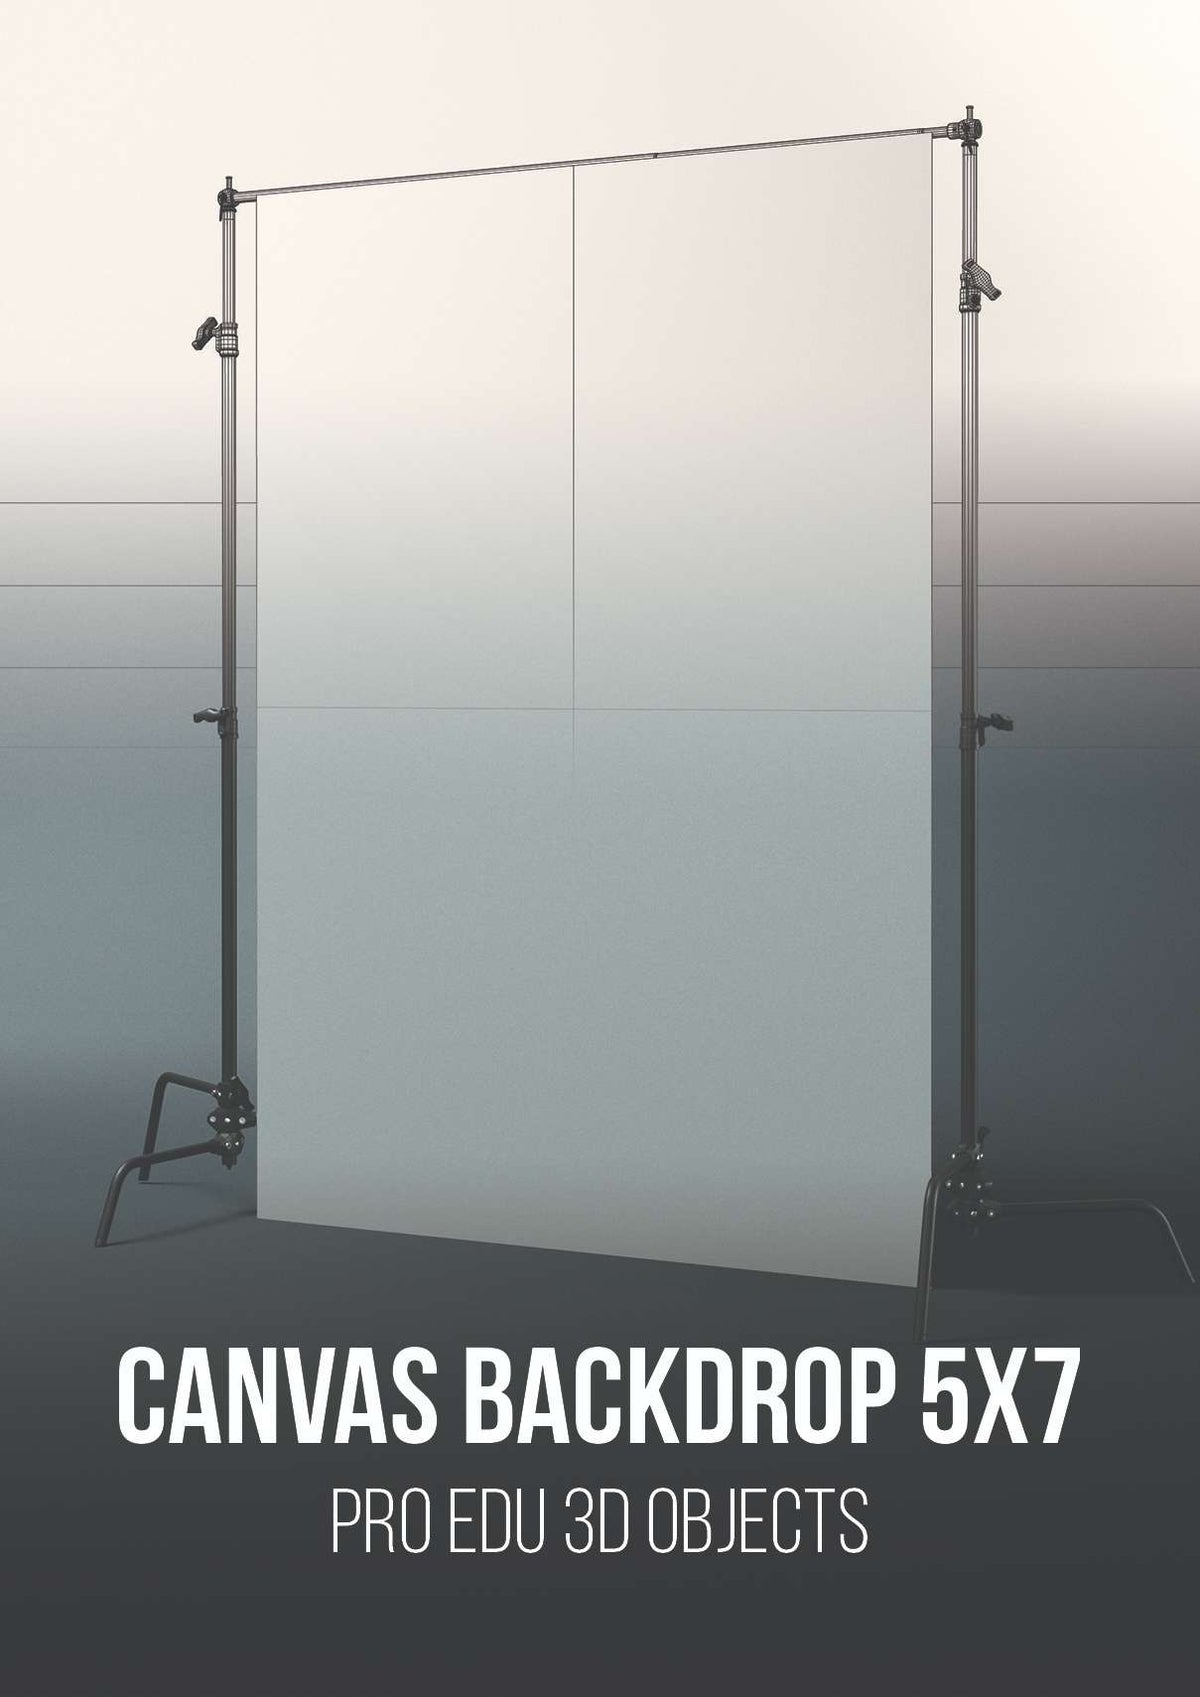 C-Stand Backdrop Support With 5x7 Canvas 3D Model